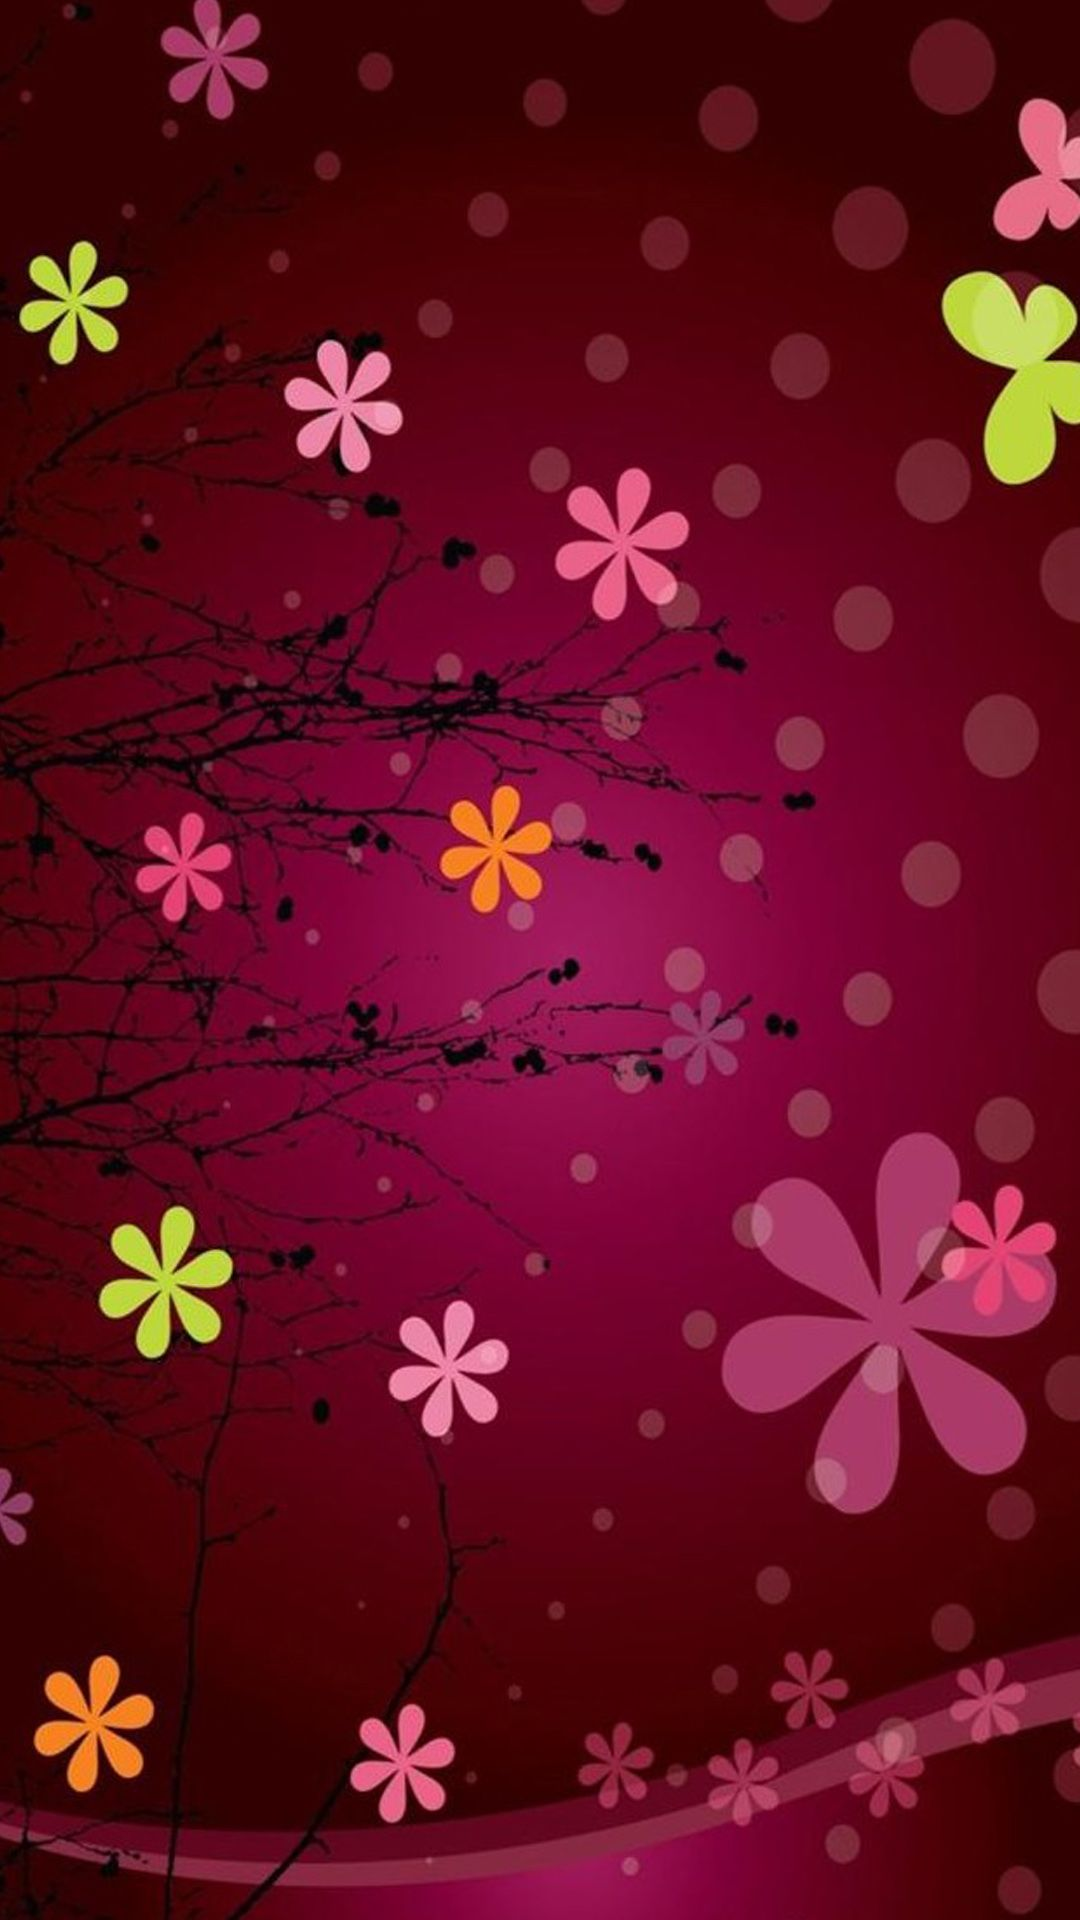 How to use scrapbook on galaxy s5 -  182 Flower Wallpapers For Samsung Galaxy S5 57 Iphone6plus